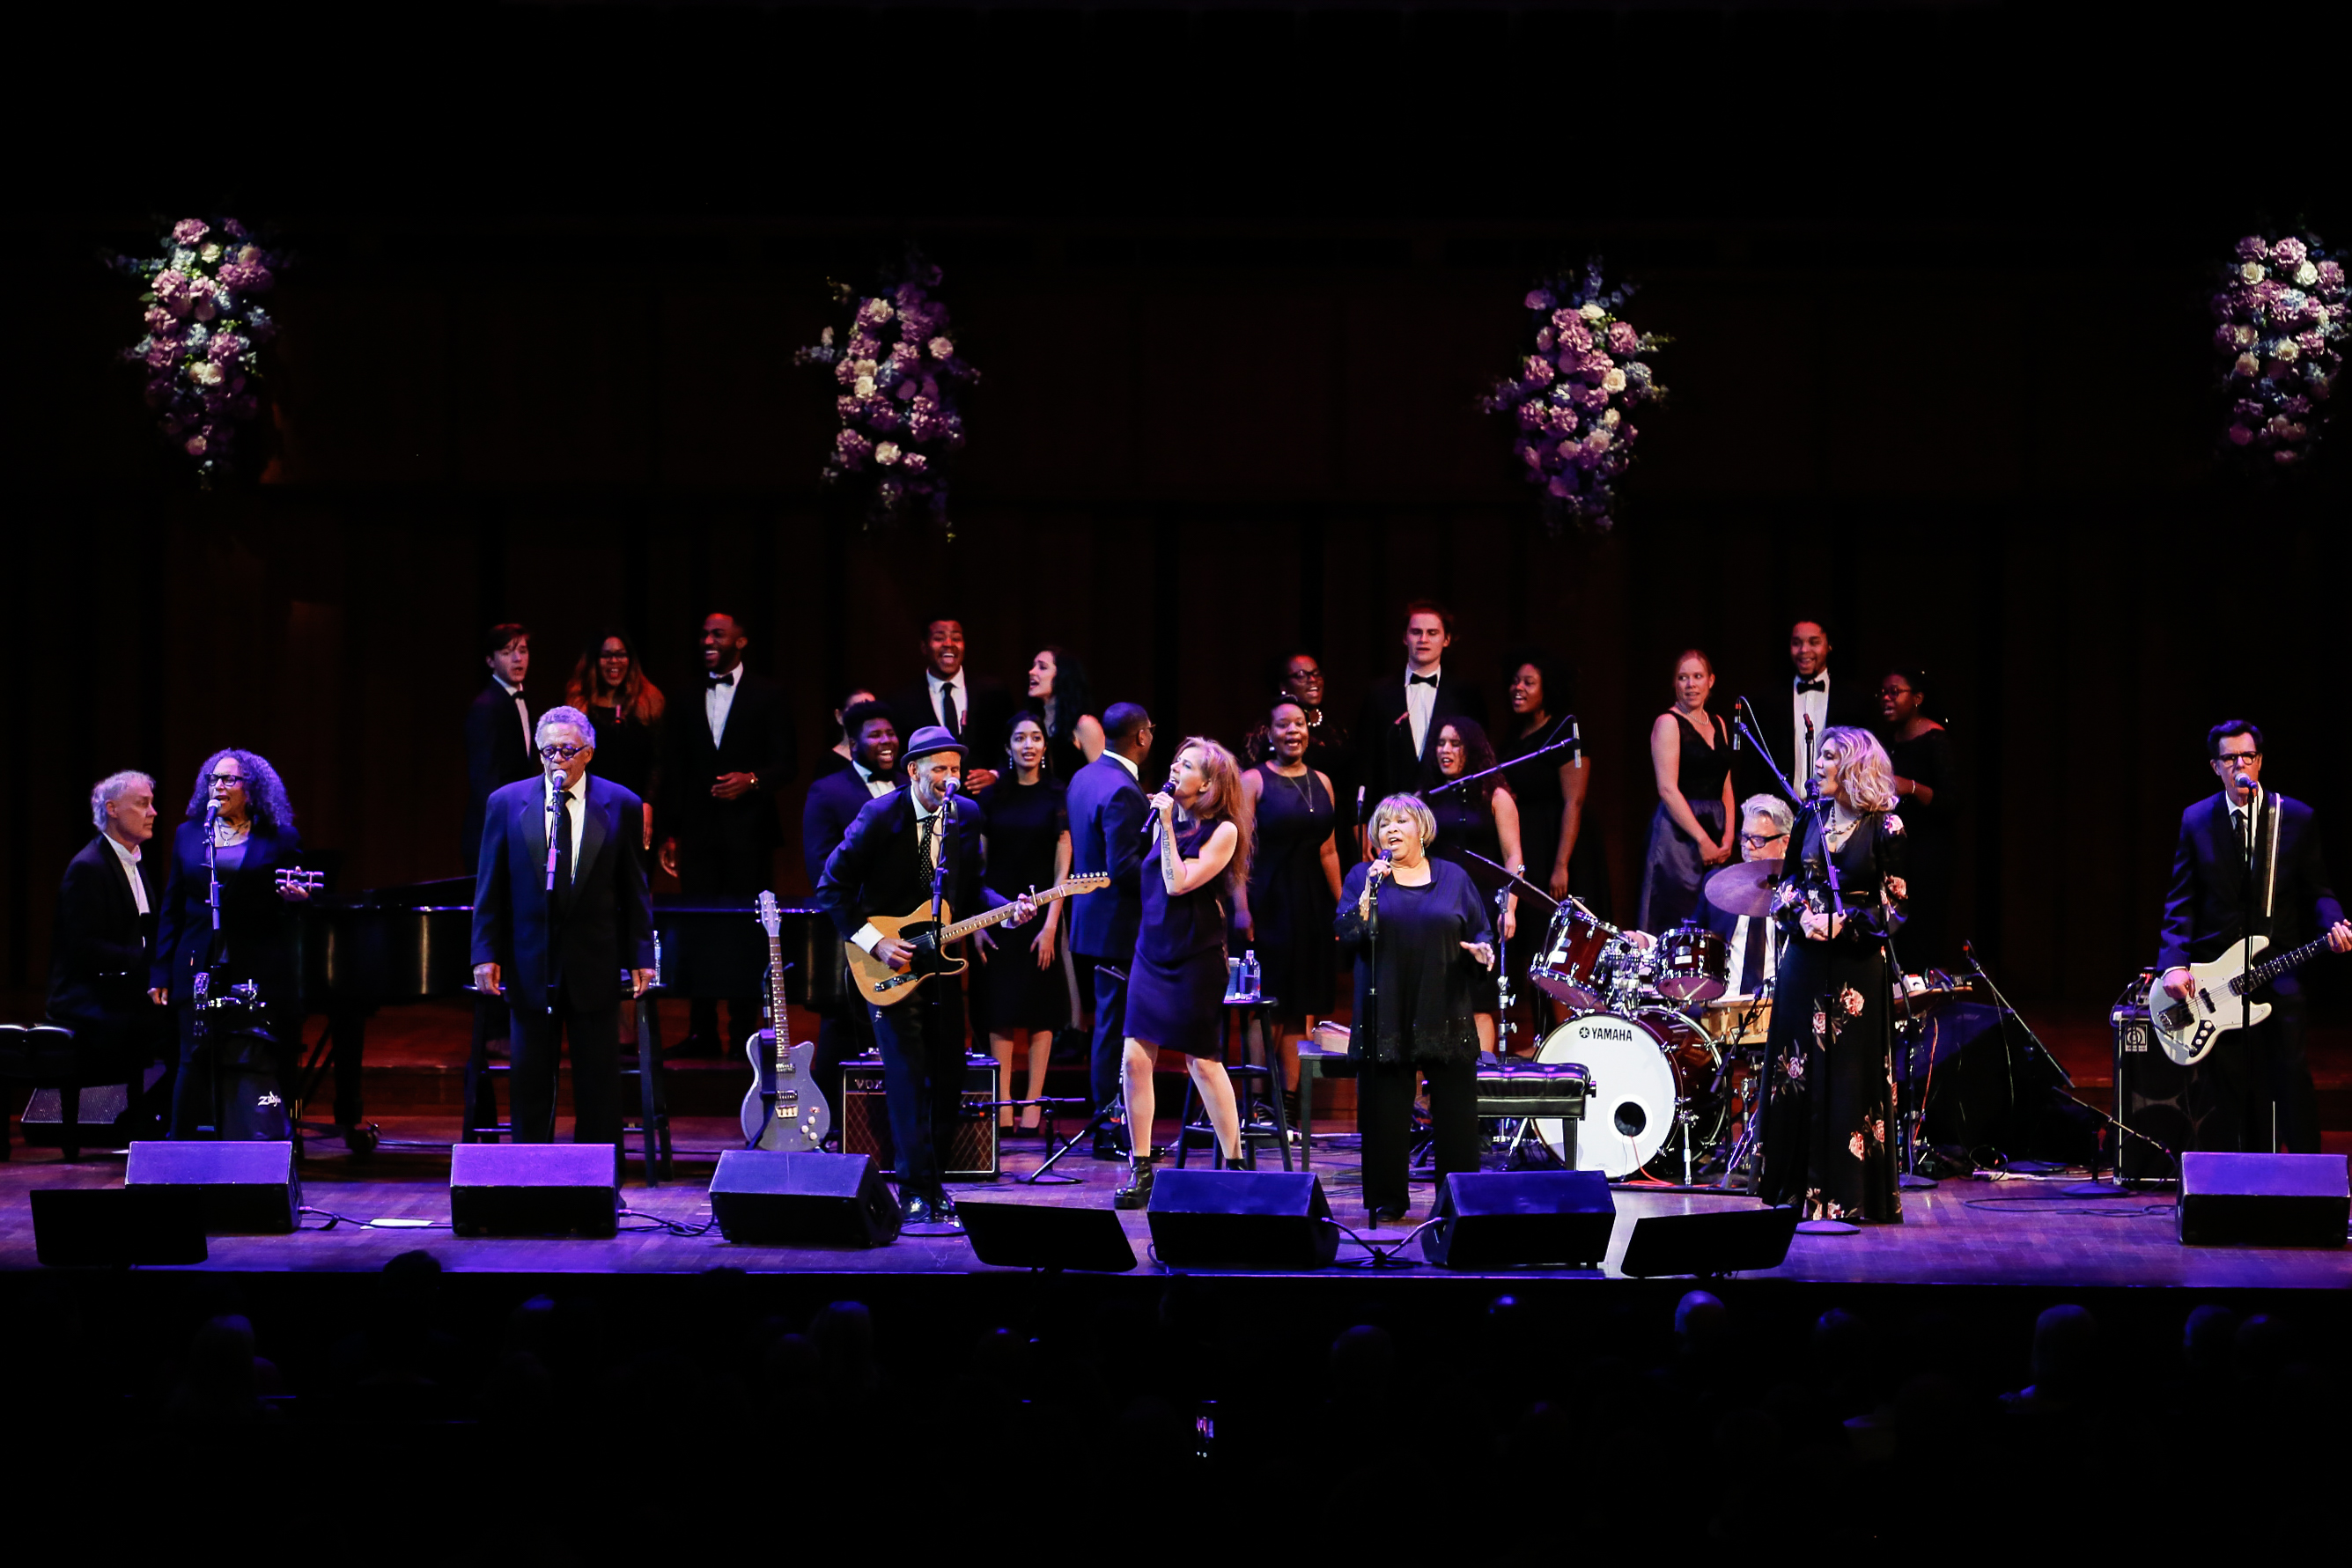 She was joined throughout the 12-song set by a five-person band (Rick Holmstrom, Vicki Randle, Donny Gerrard, Stephen Hodges and Jeff Turress) and special guests Neko Case, Bruce Hornsby and Alison Krauss.{ }(Image: Yassine El Mansouri for the Kennedy Center)